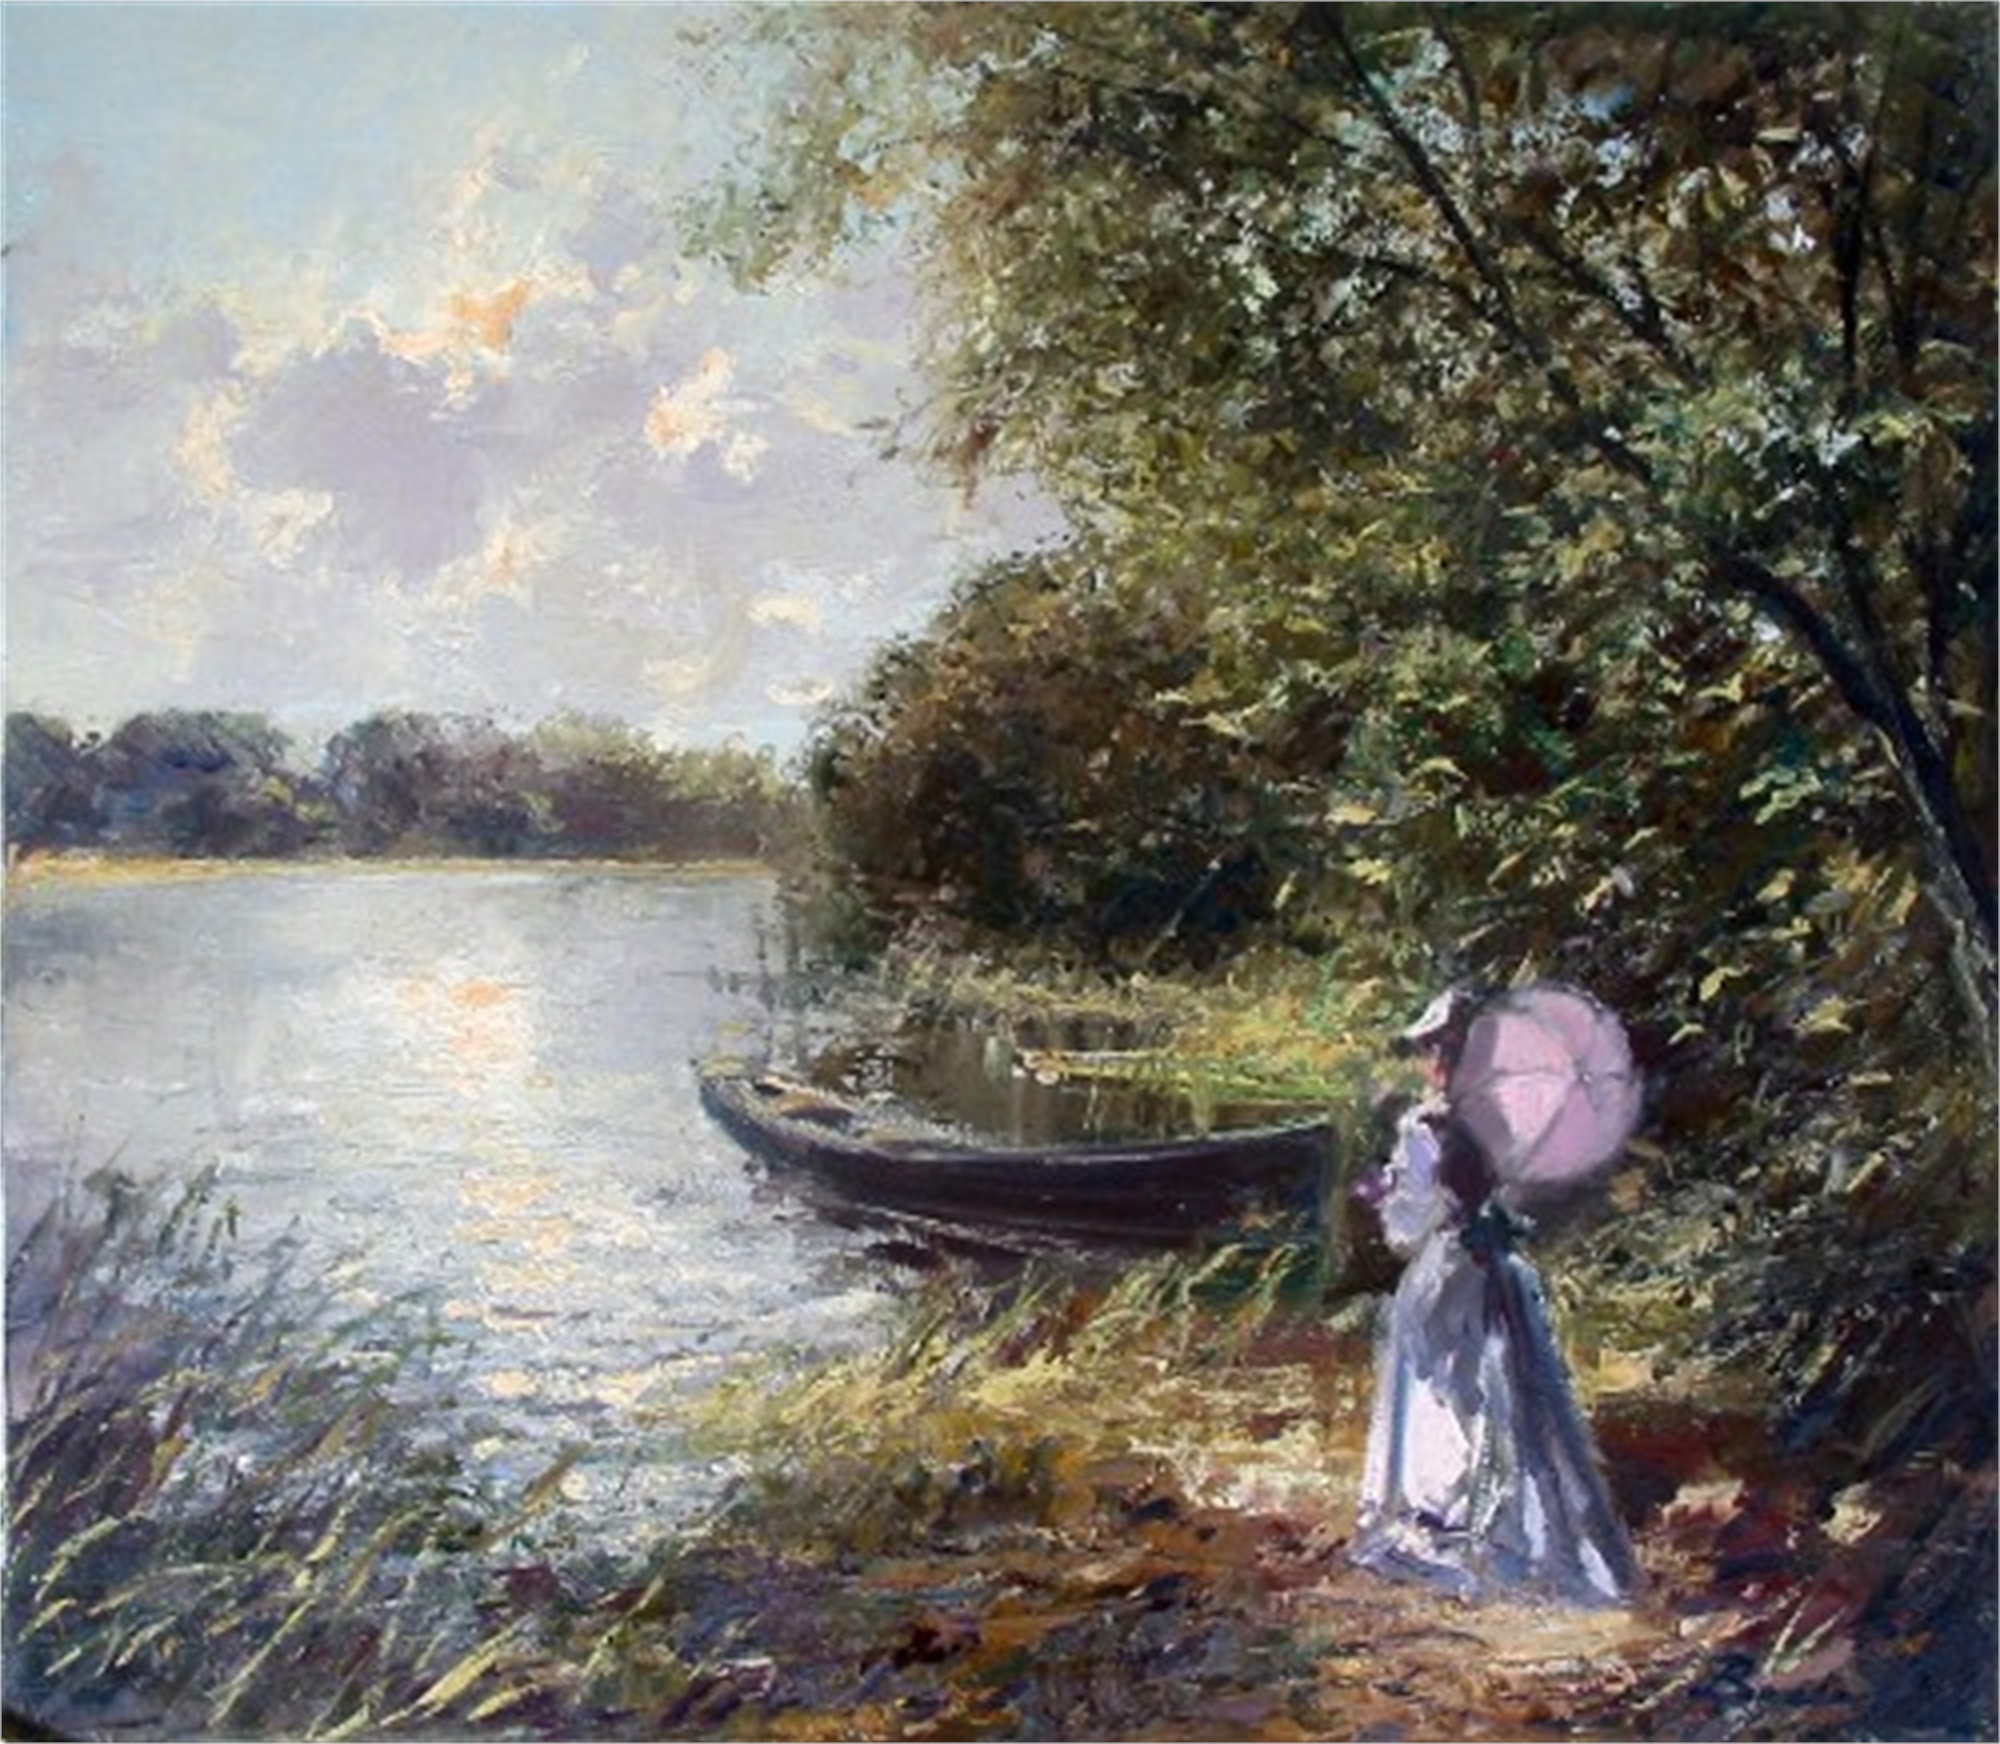 GIRL BY THE LAKE by BECKER